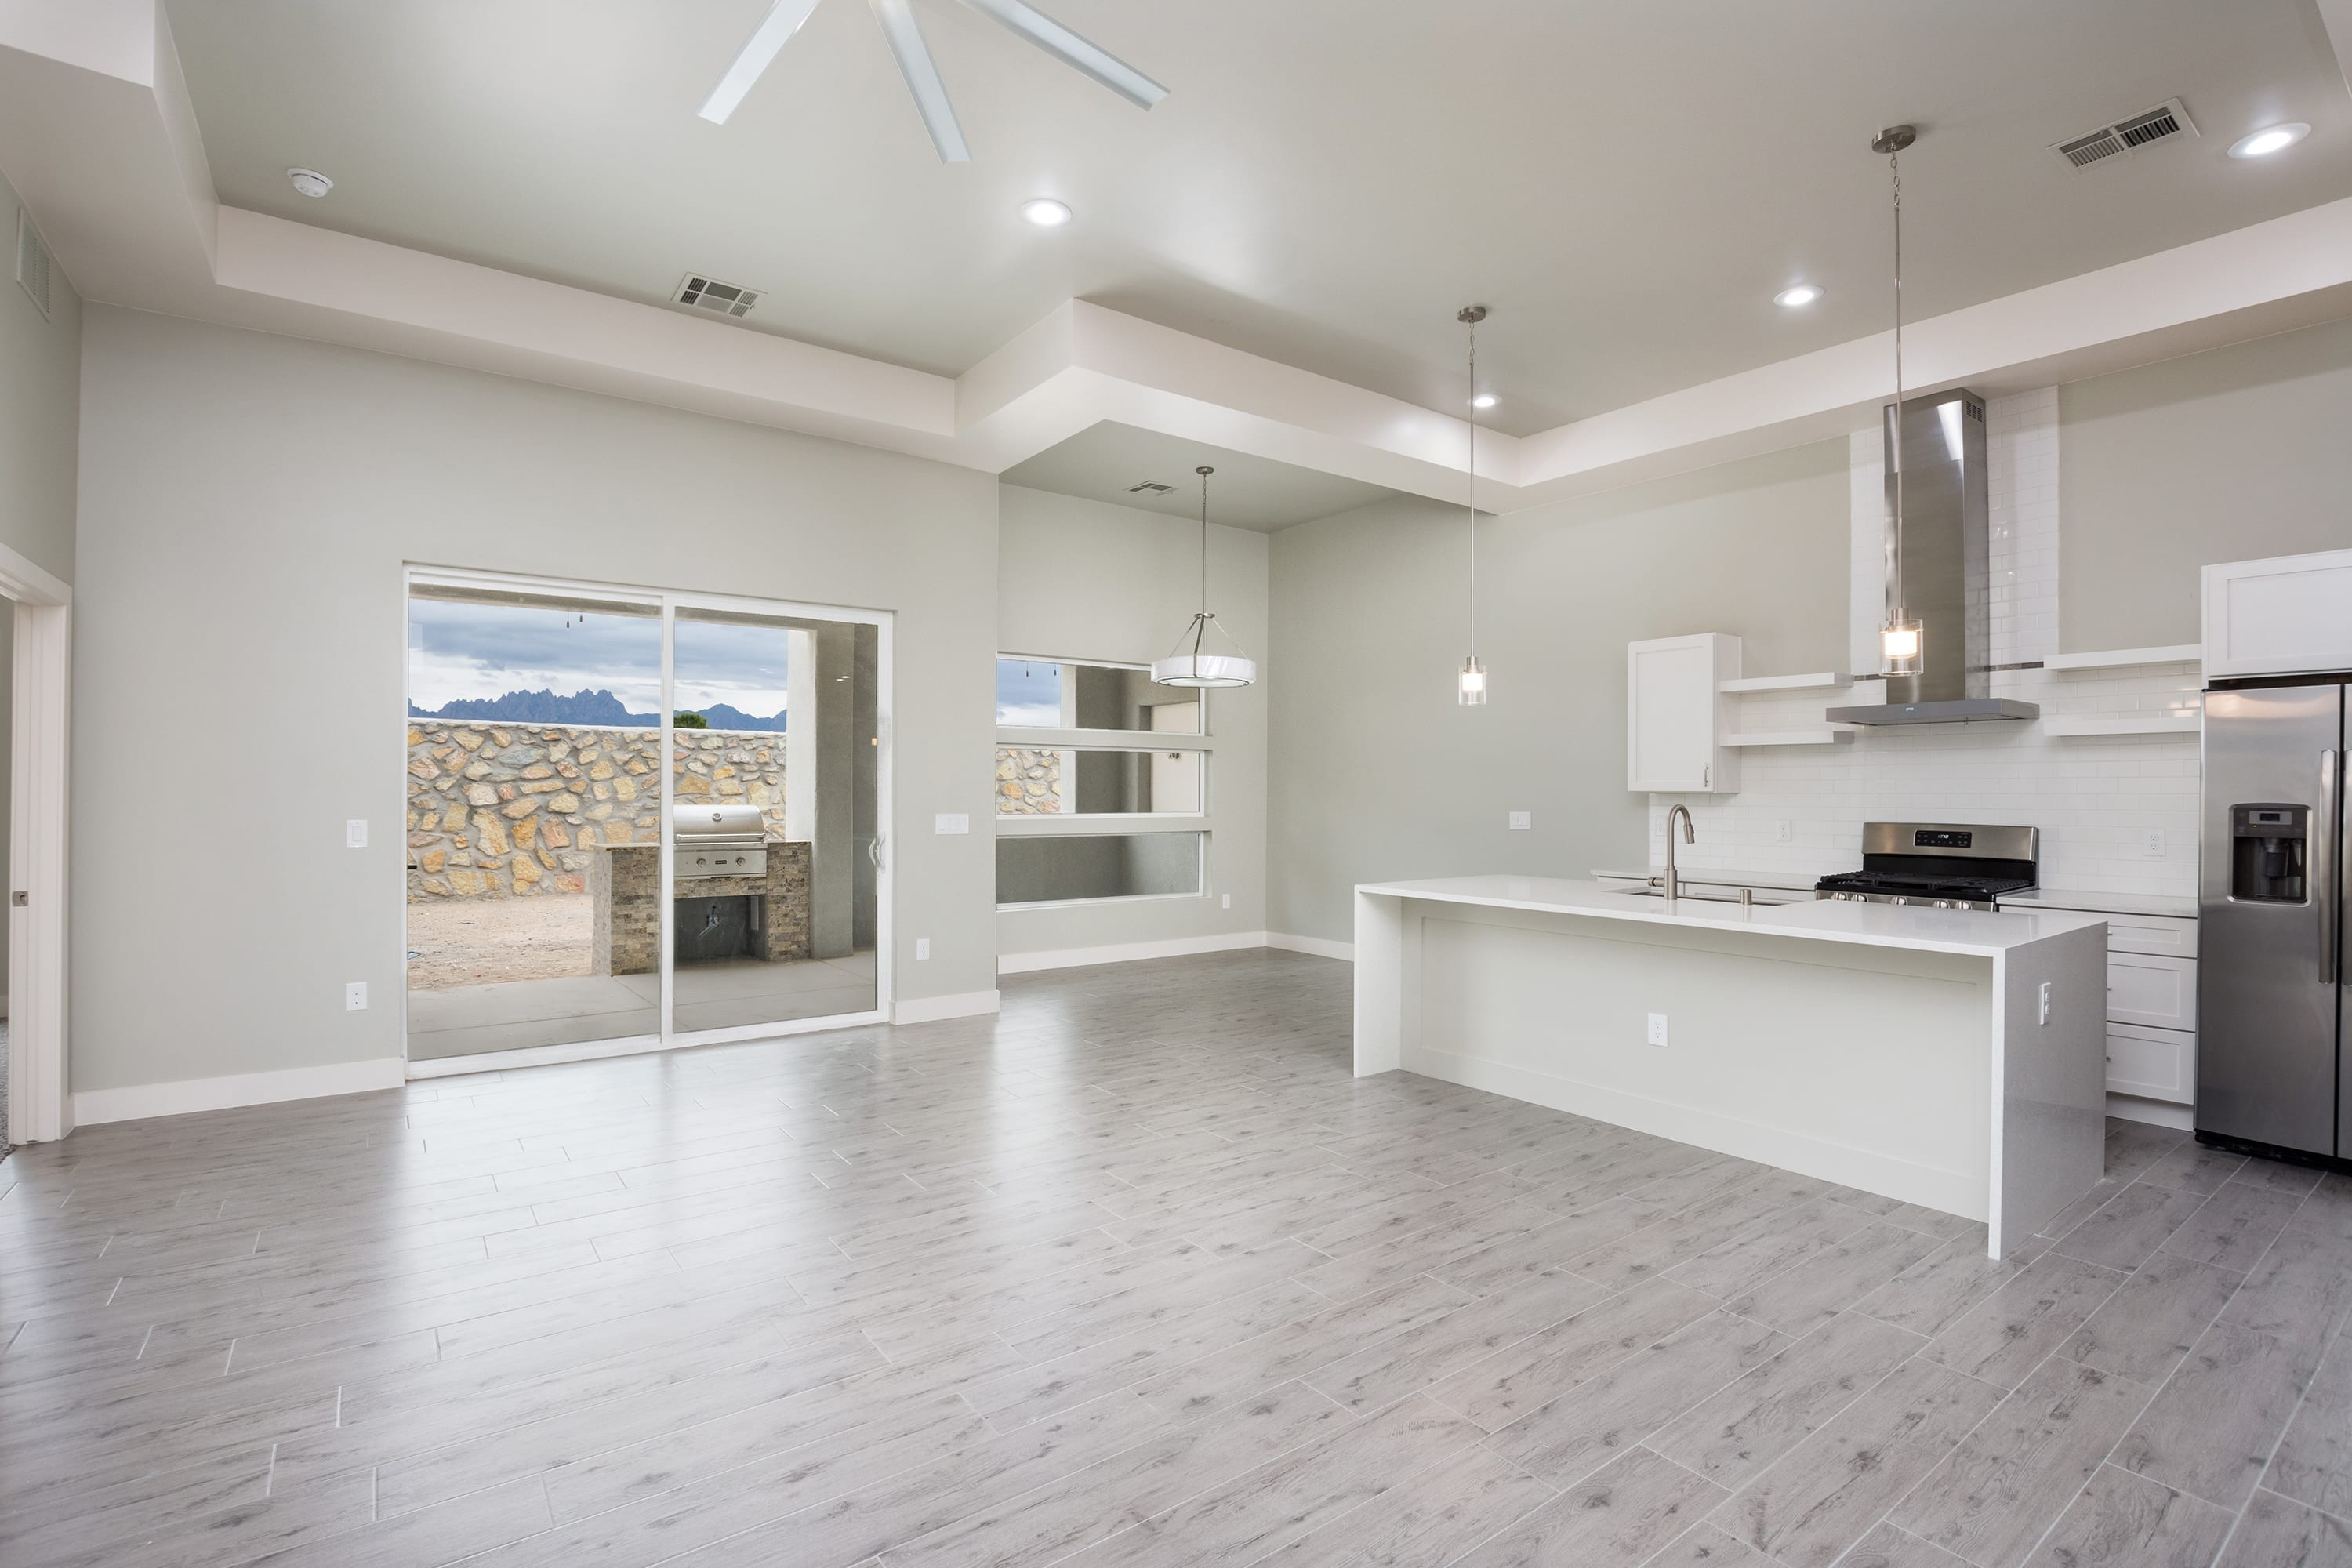 Interior ceiling shot of kitchen and dining area in 2884 Maddox contemporary home